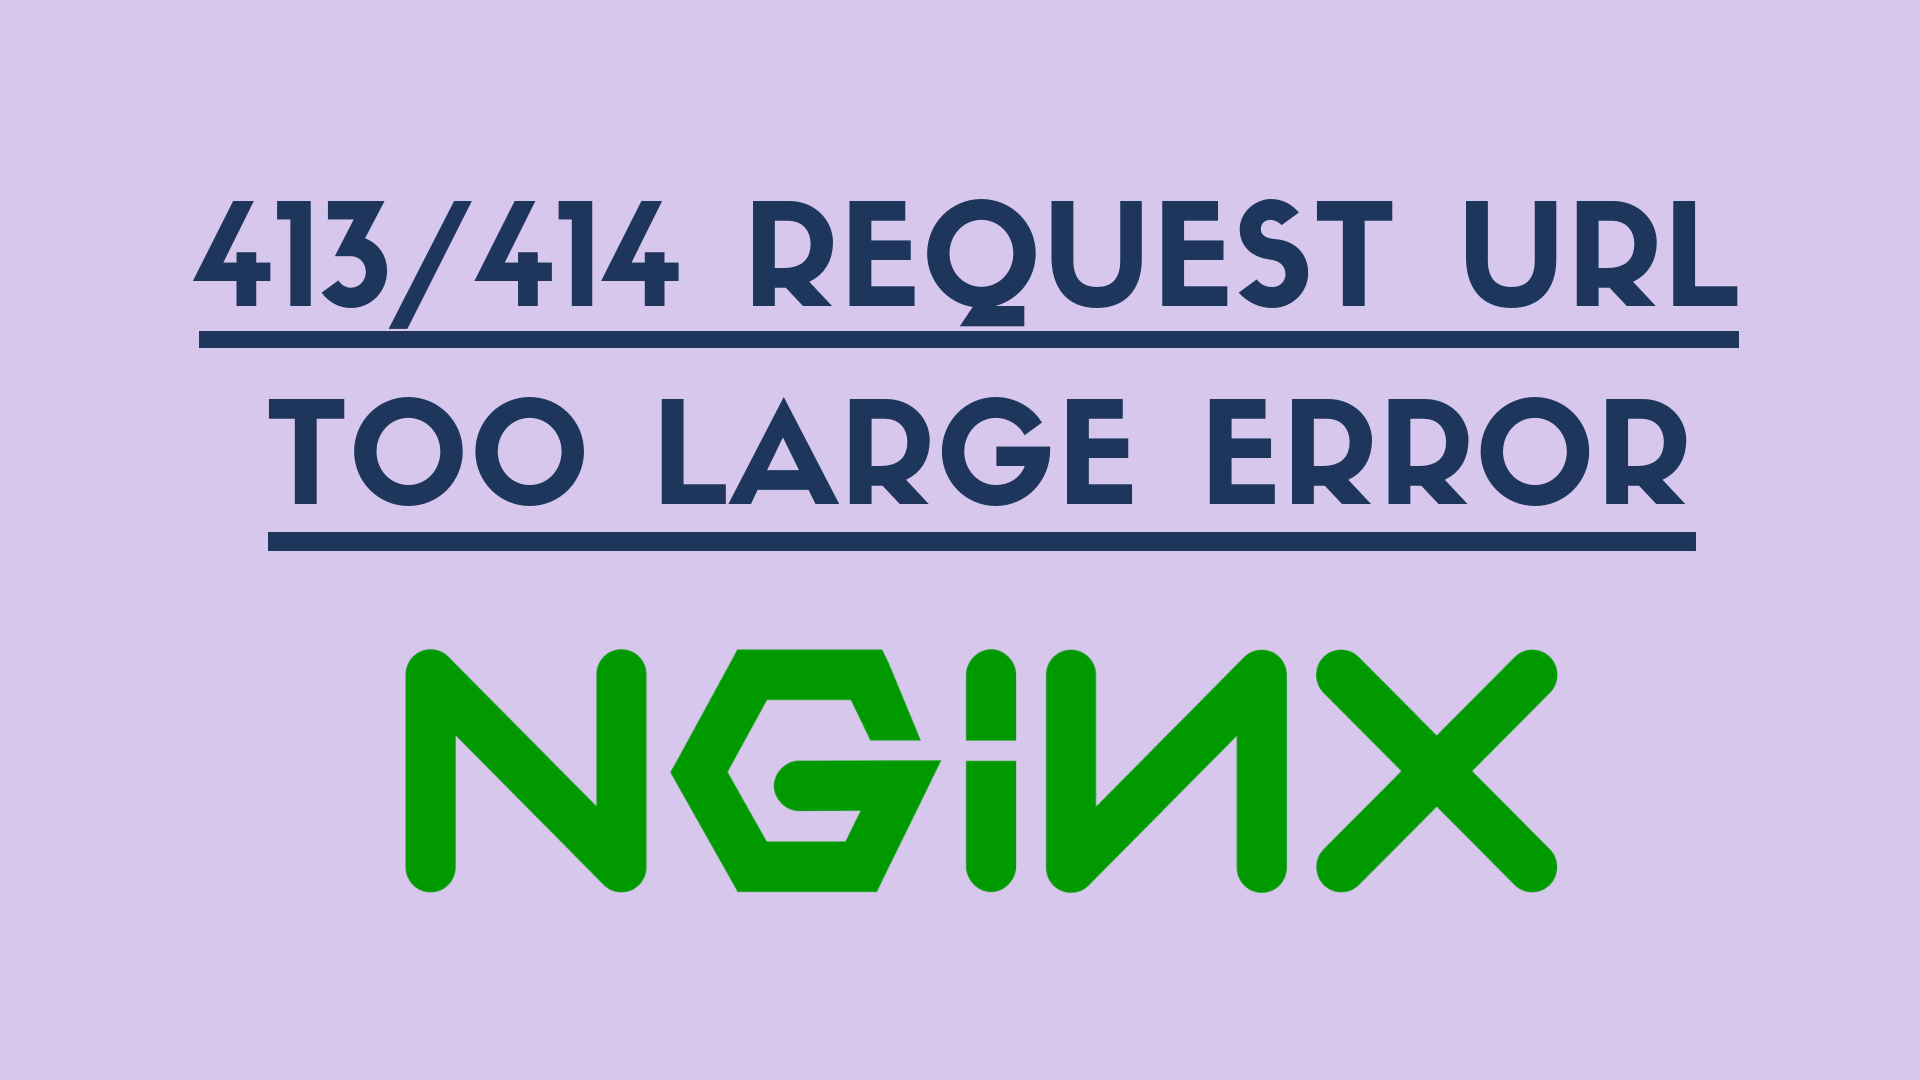 413/414 Request URL/Entity Too Large Error Nginx \u2013 Aviabird \u2013 Medium